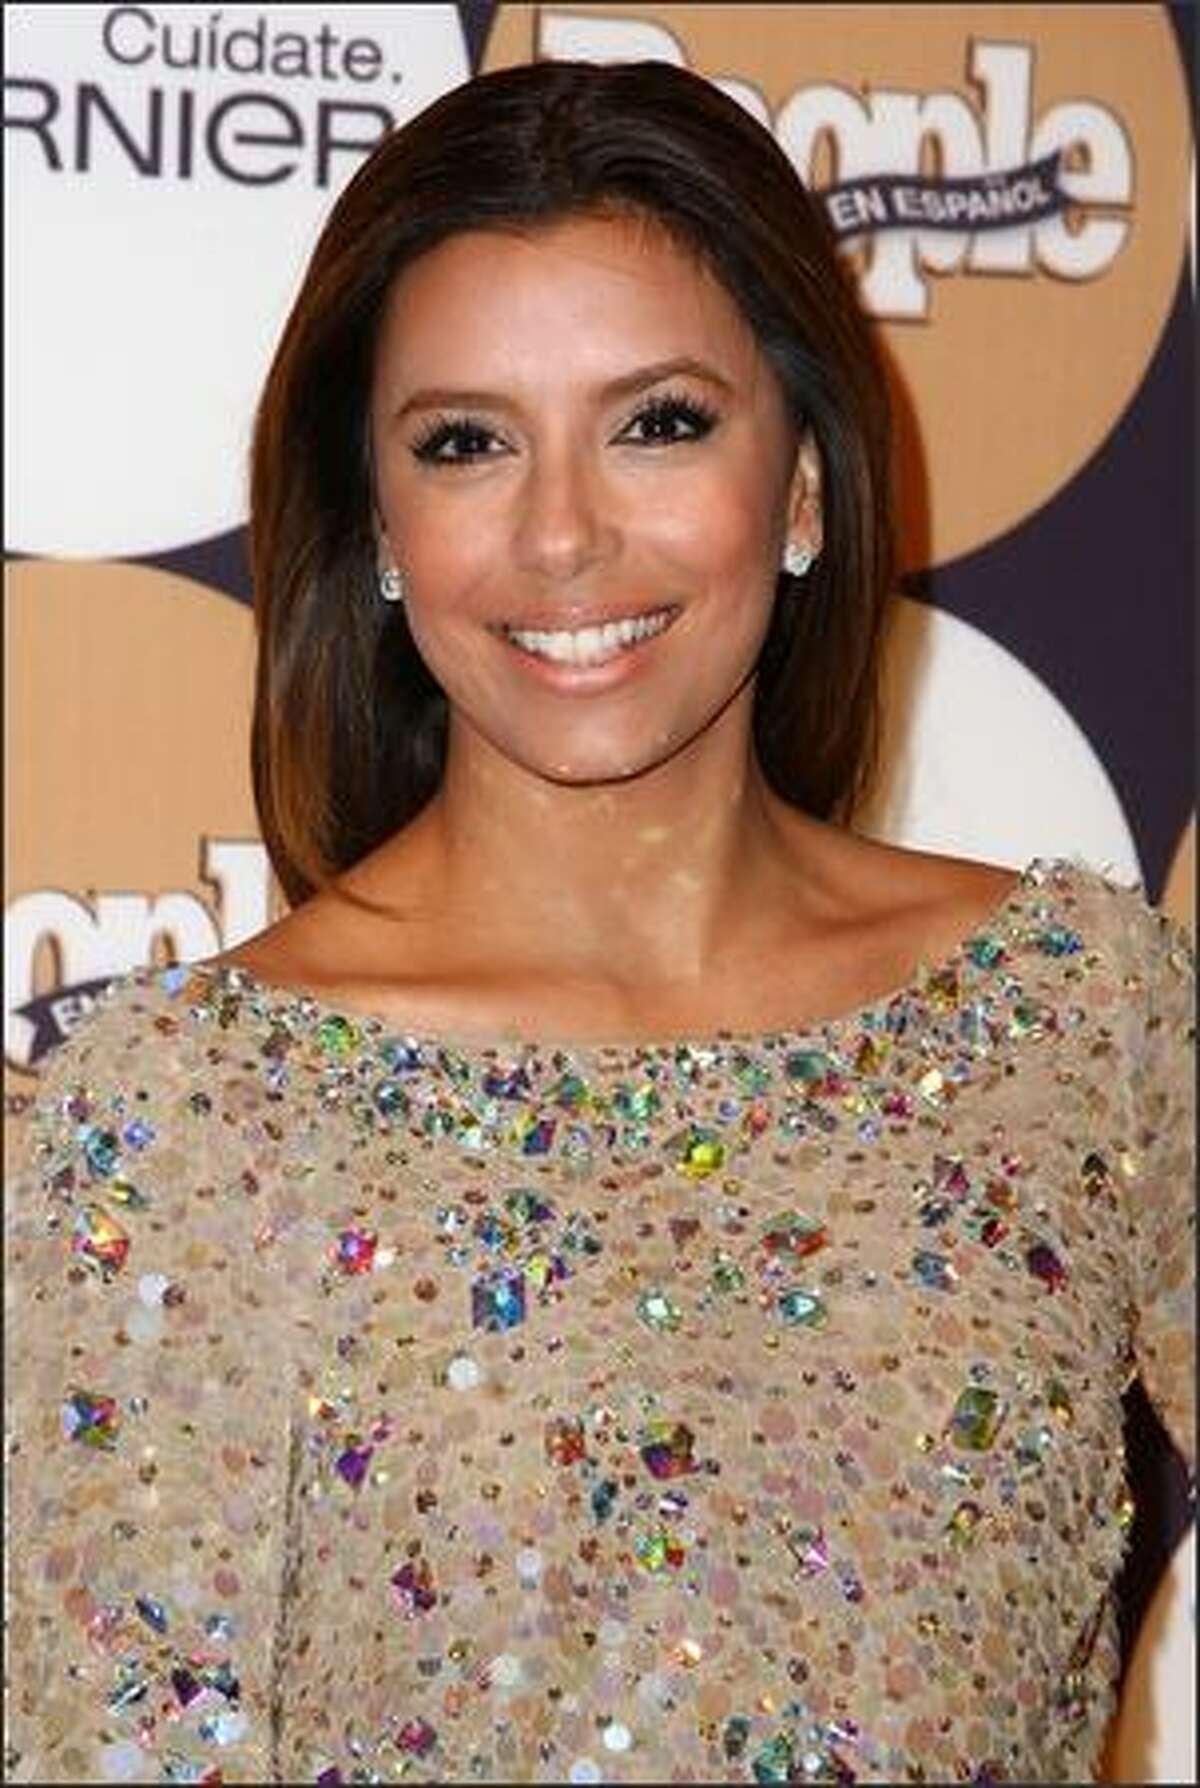 """Actress Eva Longoria Parker attends People en Espanol's """"50 Most Beautiful"""" event at The Edison Ballroom in New York on Wednesday, May 13, 2009."""